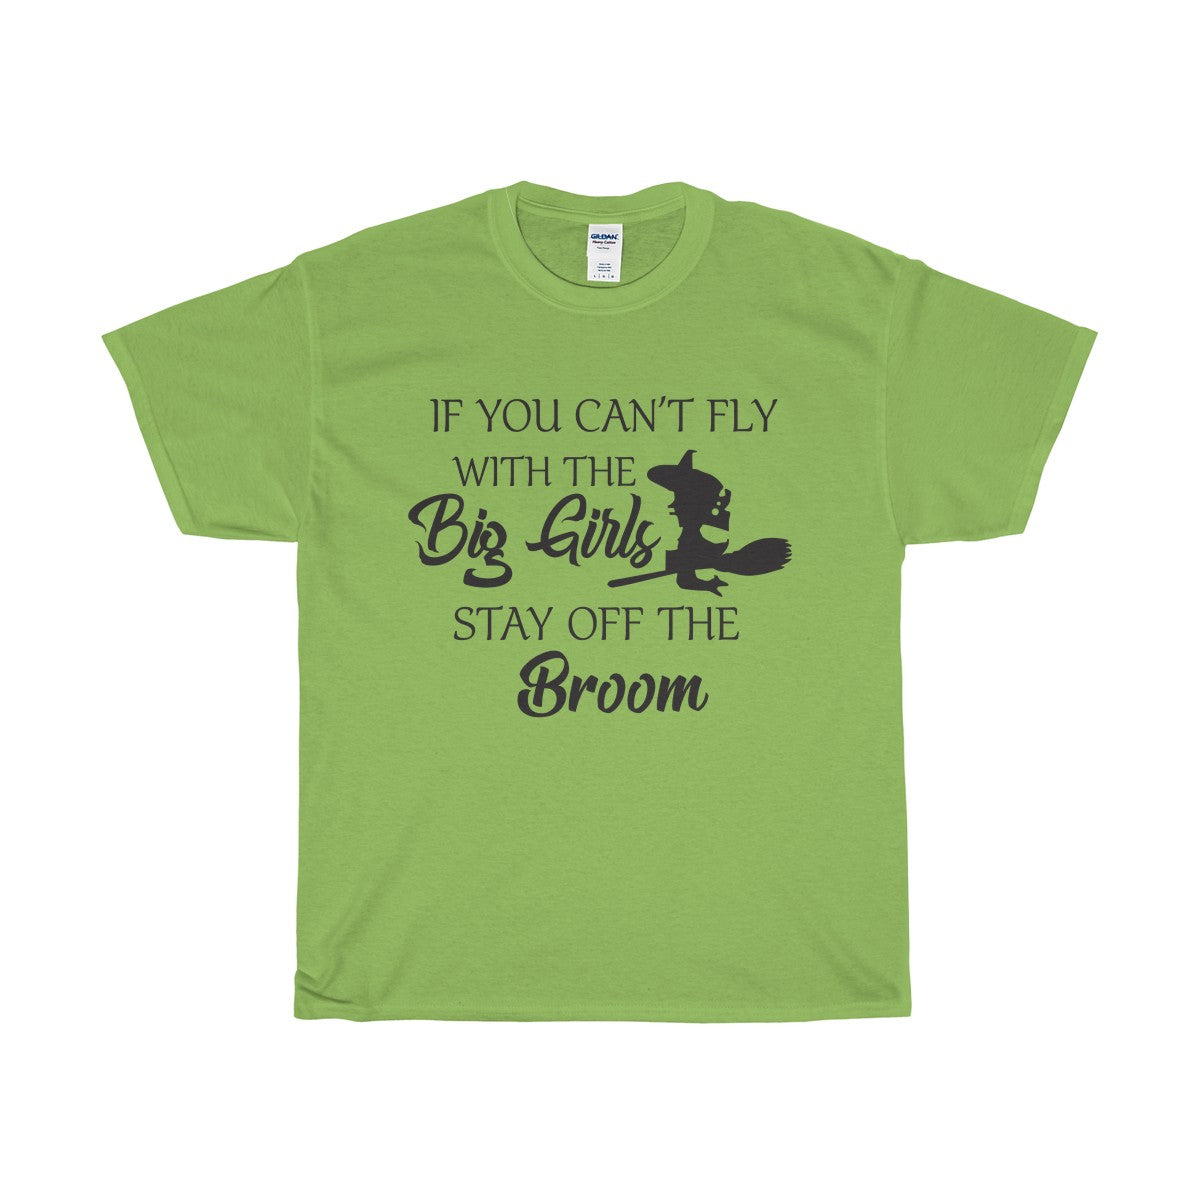 Stay of the broom Unisex Heavy Cotton Tee - Diva & noel